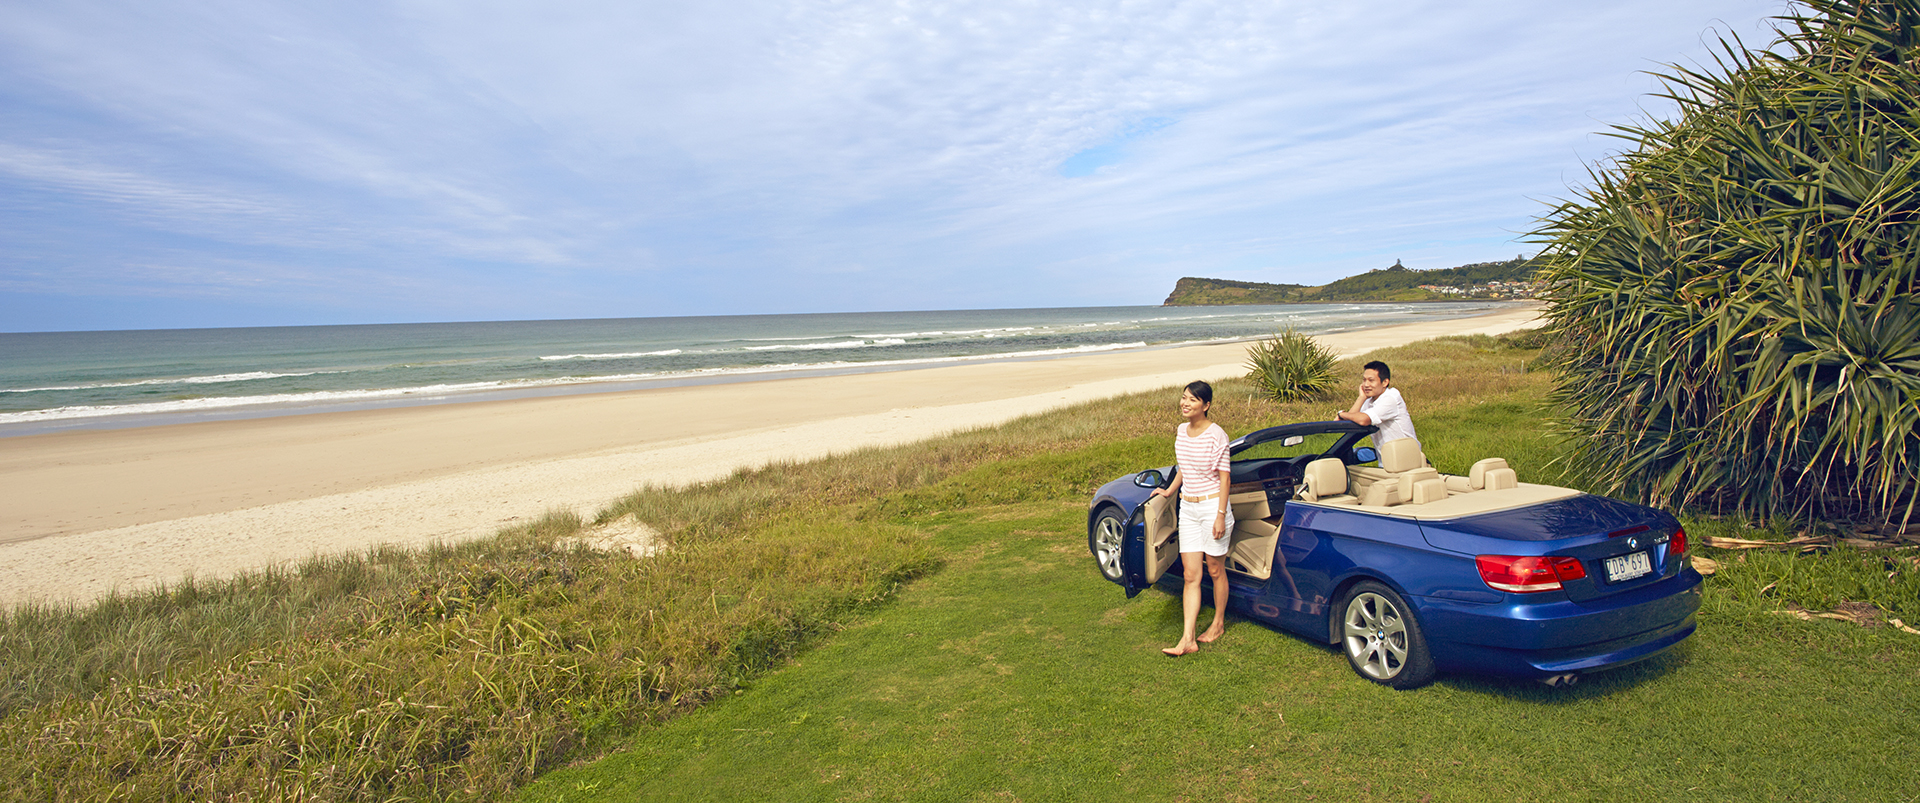 Tourism Australia image of couple with car overlooking Seven Mile Beach Lennox Headland